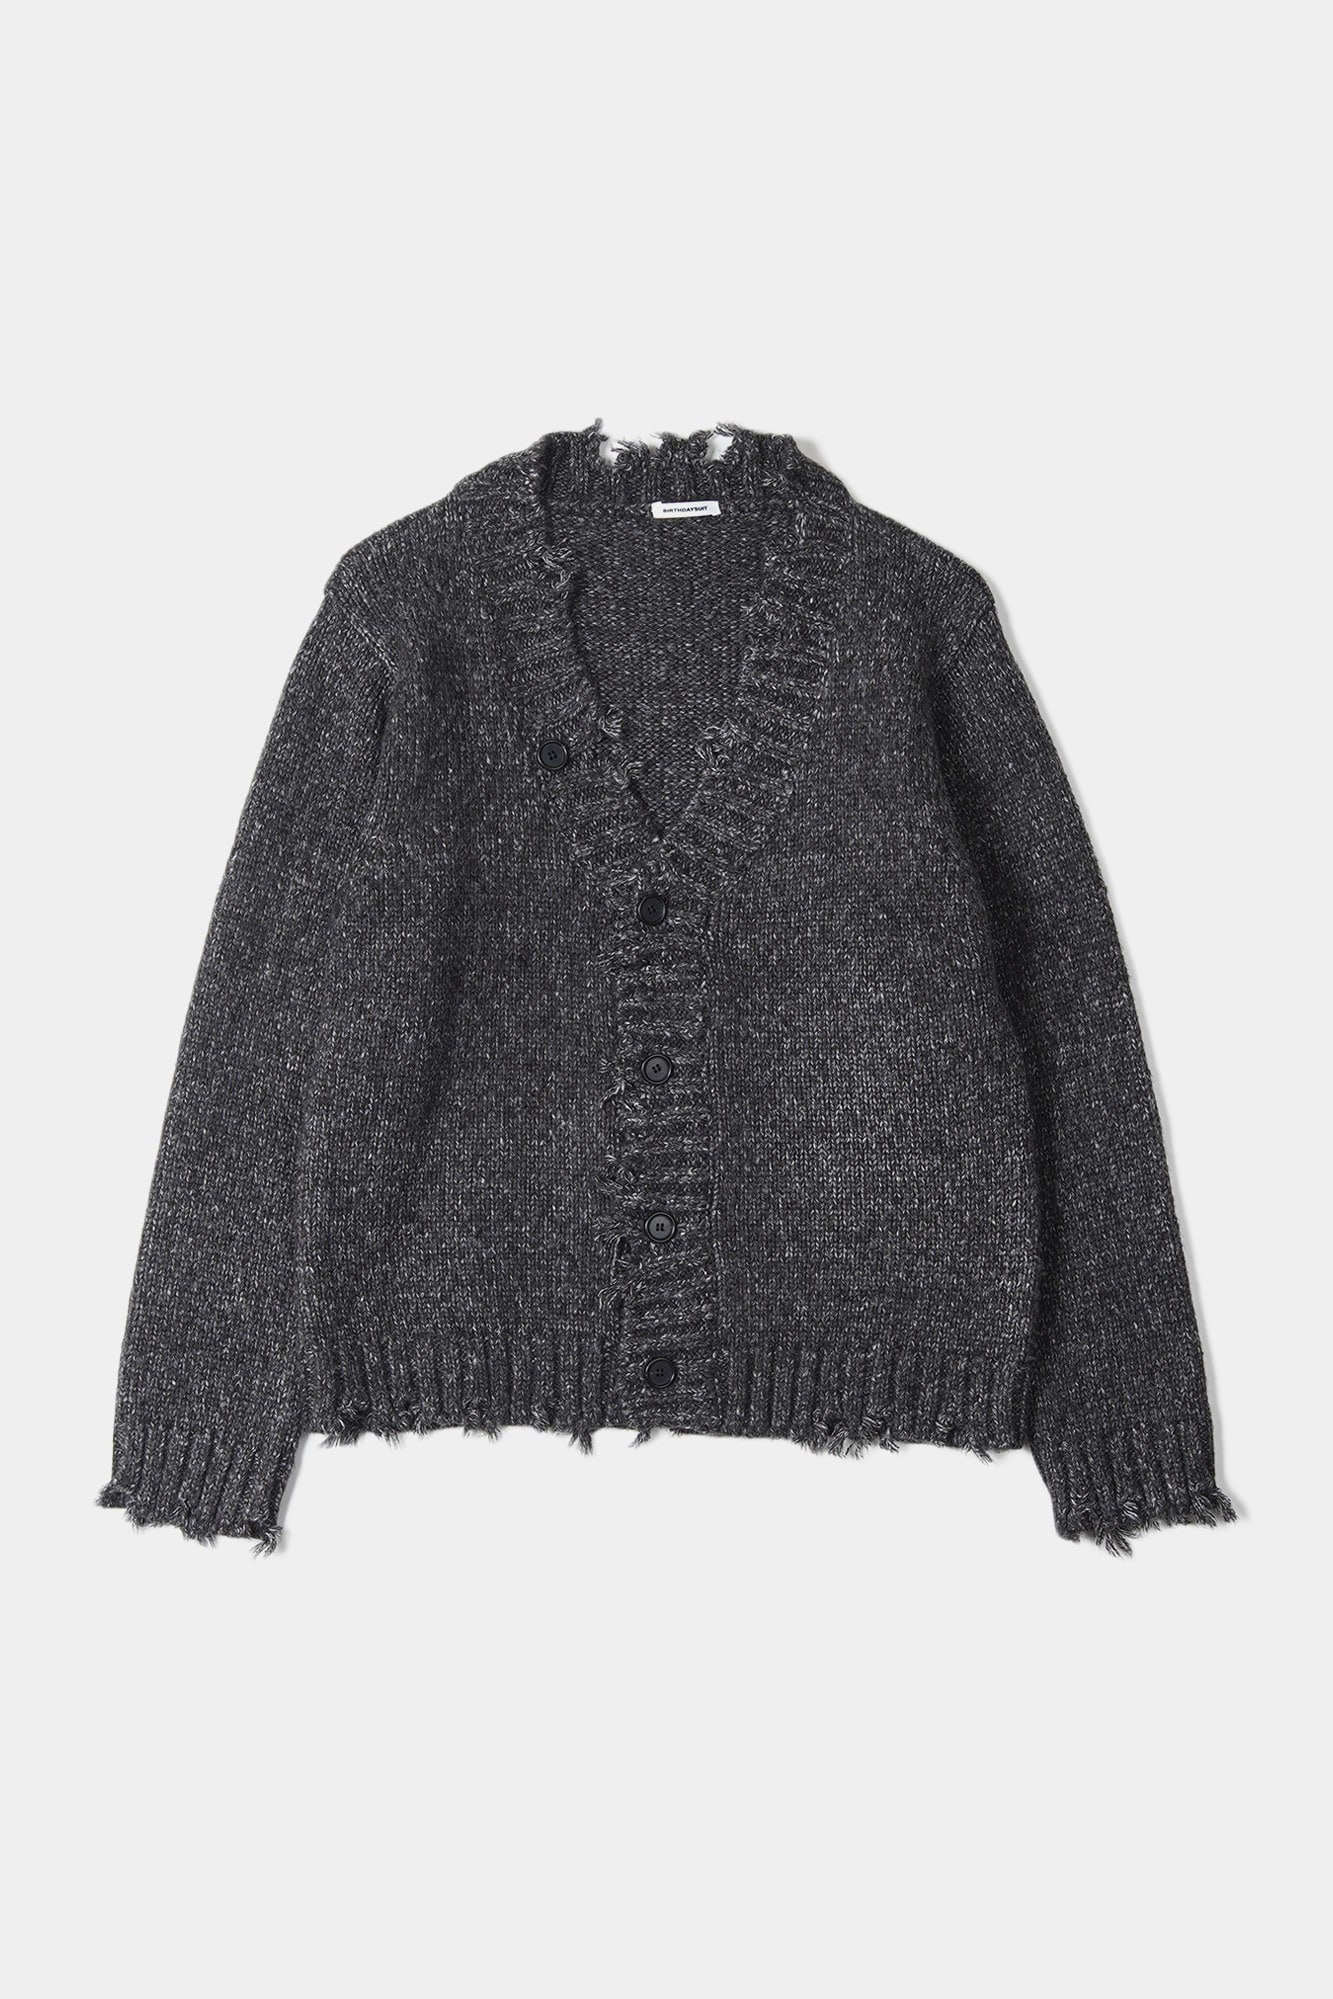 "BIRTHDAYSUIT Damage Big Cardigan ""Black"""